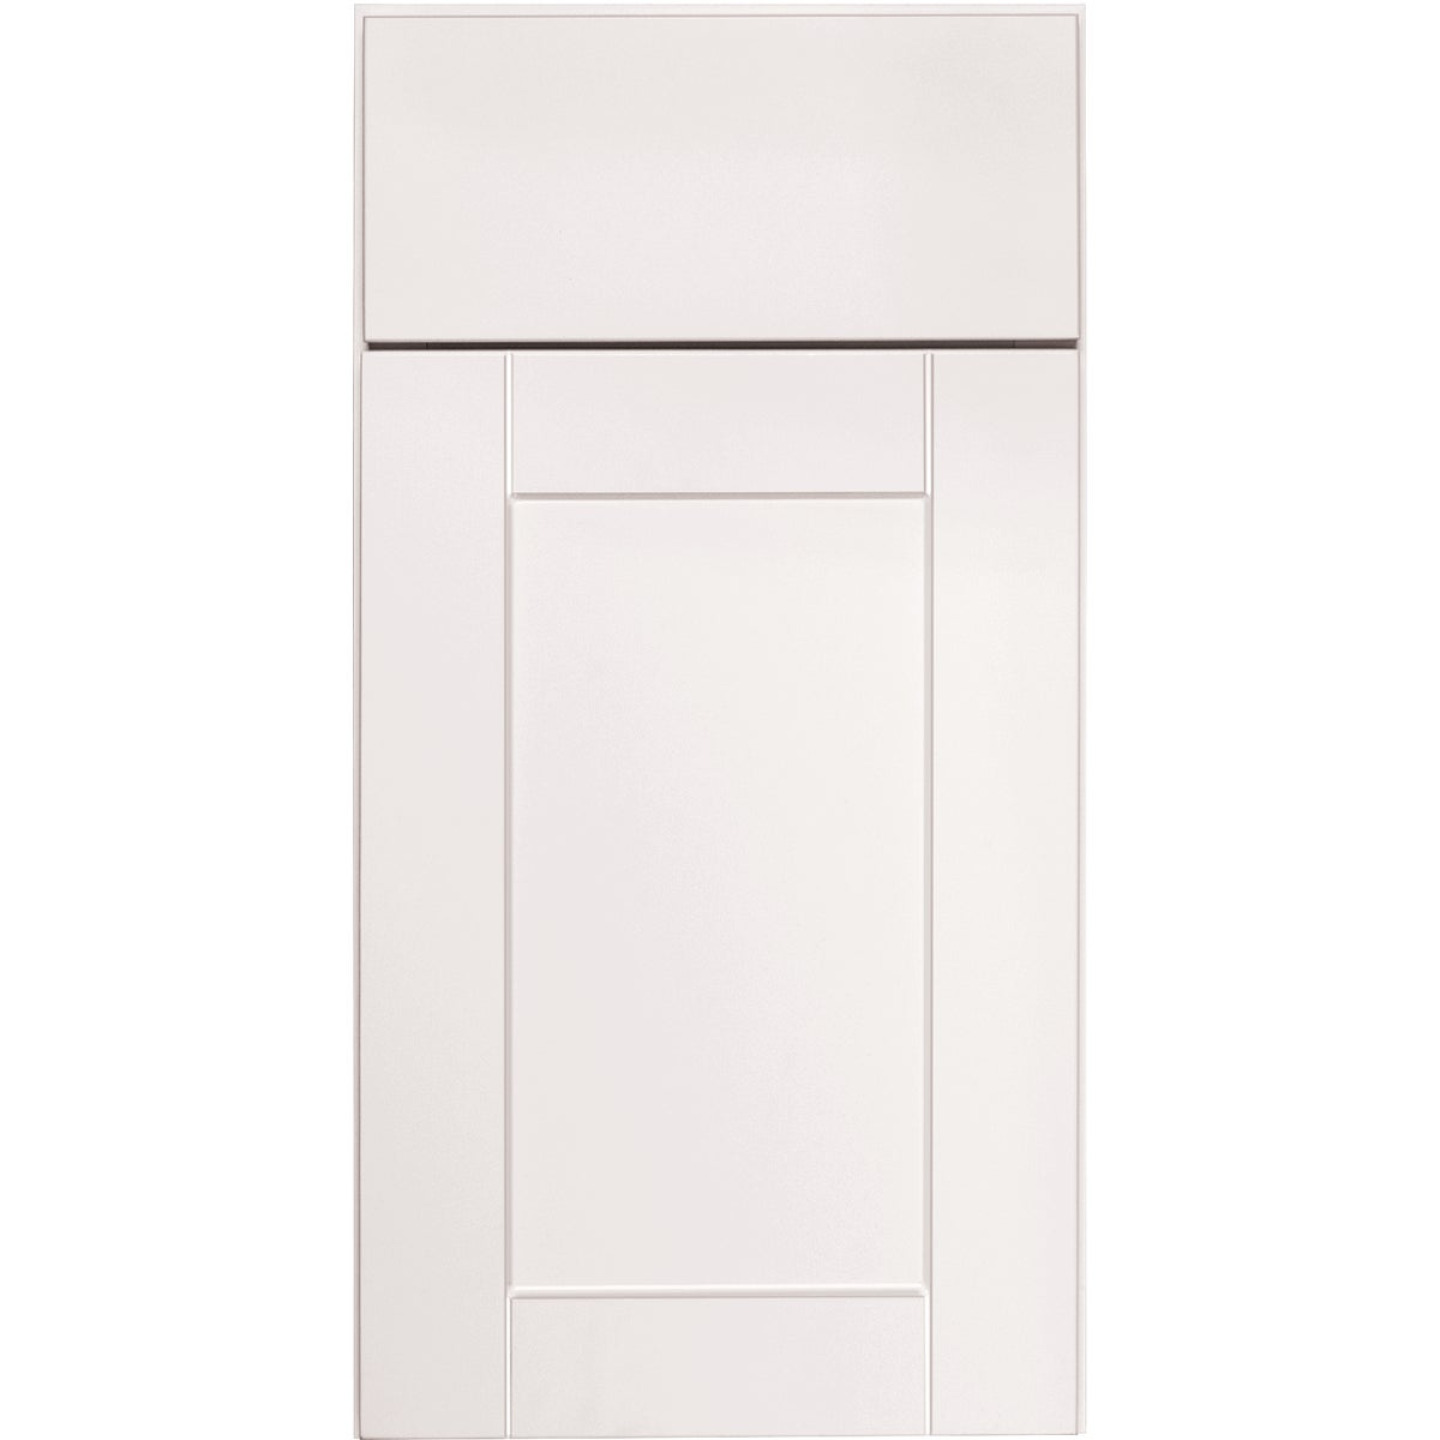 Continental Cabinets Andover Shaker 15 In. W x 30 In. H x 12 In. D White Thermofoil Wall Kitchen Cabinet Image 3